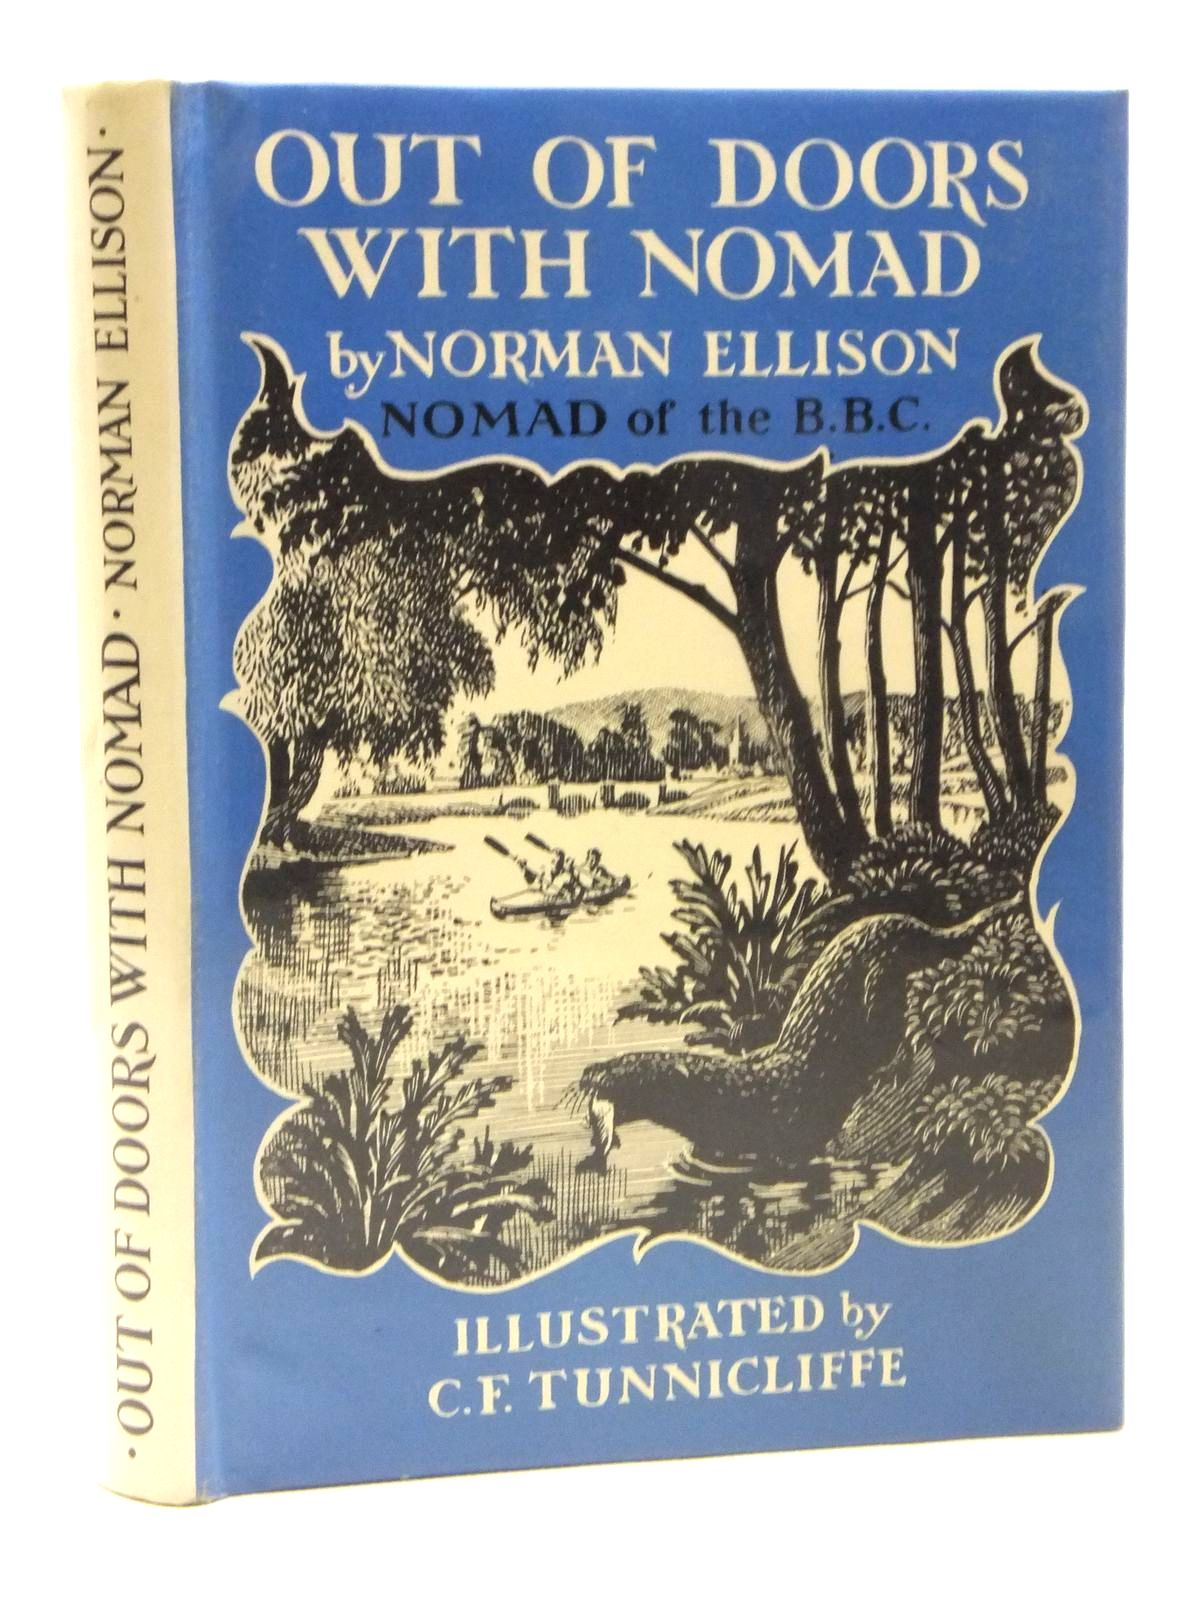 Photo of OUT OF DOORS WITH NOMAD written by Ellison, Norman illustrated by Tunnicliffe, C.F. published by University of London Press Ltd. (STOCK CODE: 2120929)  for sale by Stella & Rose's Books